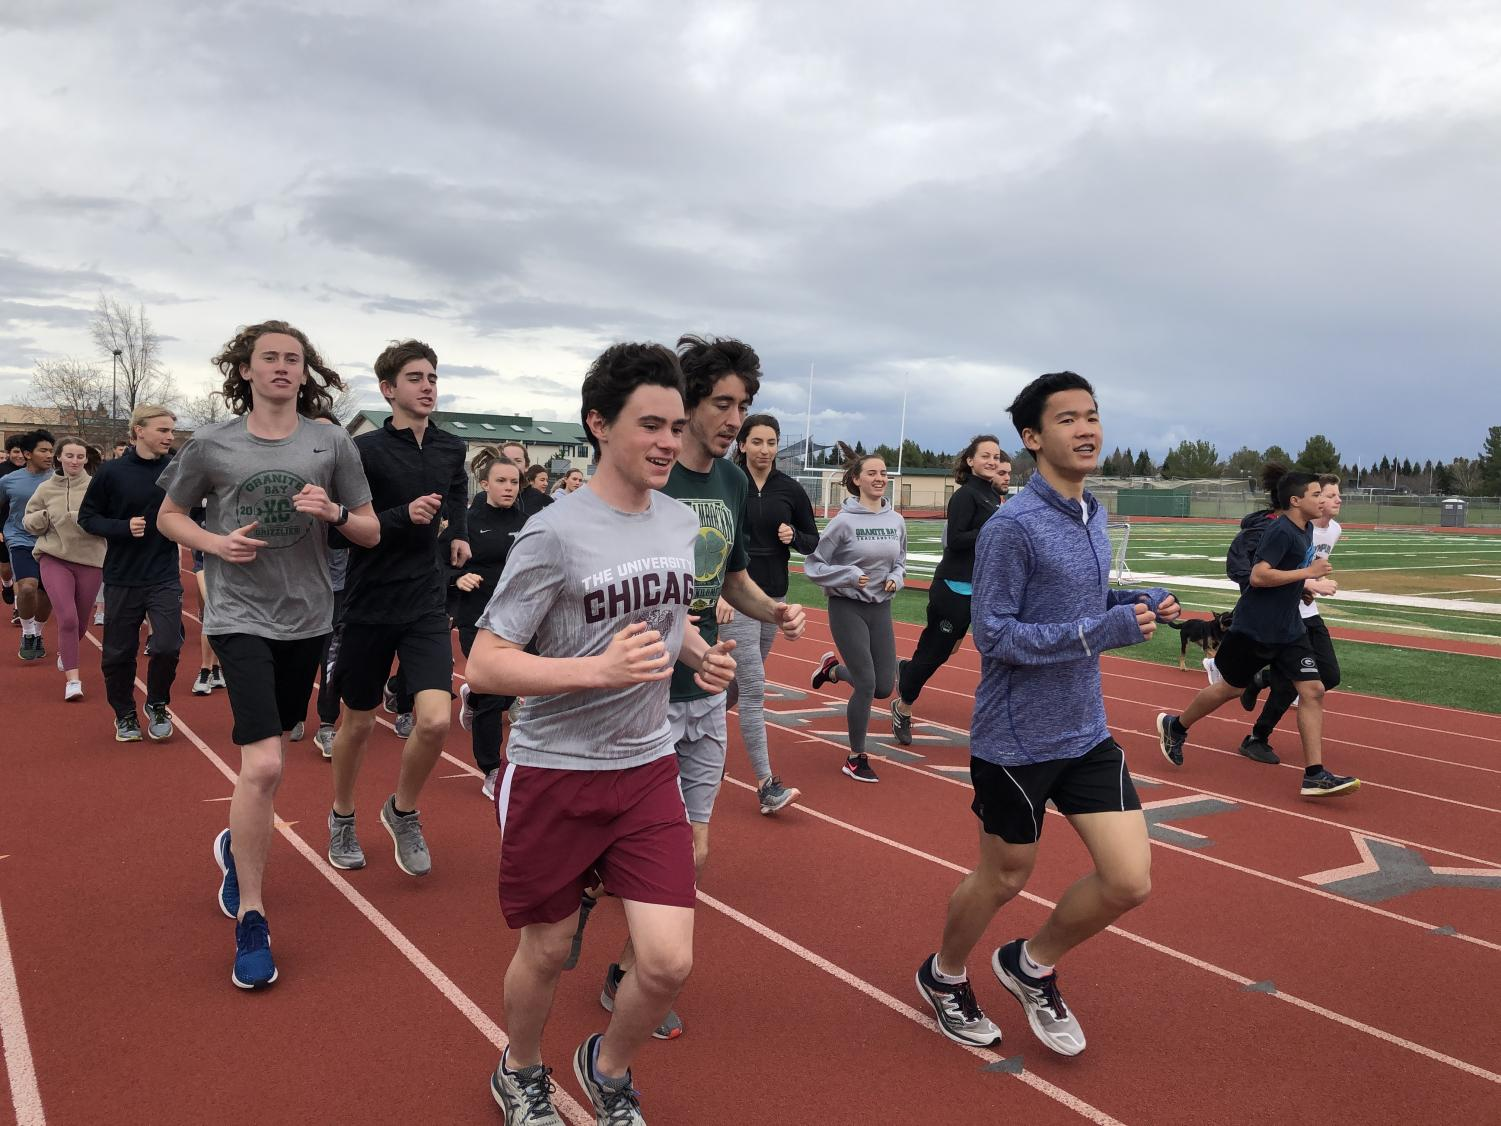 The track and field team runs warm-up laps for an after-school practice session.